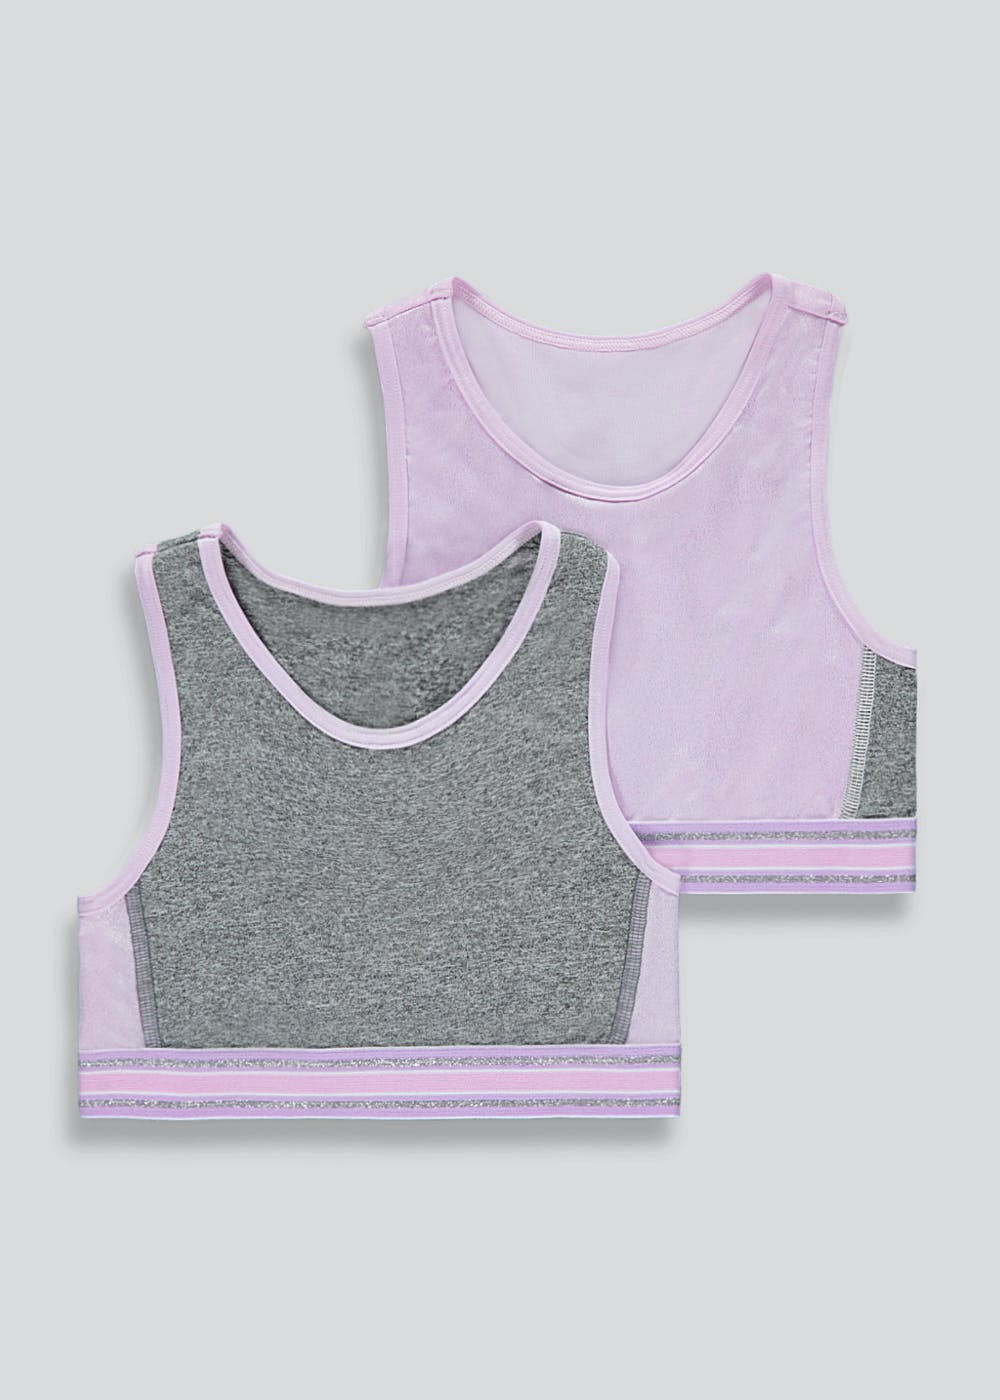 Girls 2 Pack Sports Crop Tops (6-13yrs) – Lilac